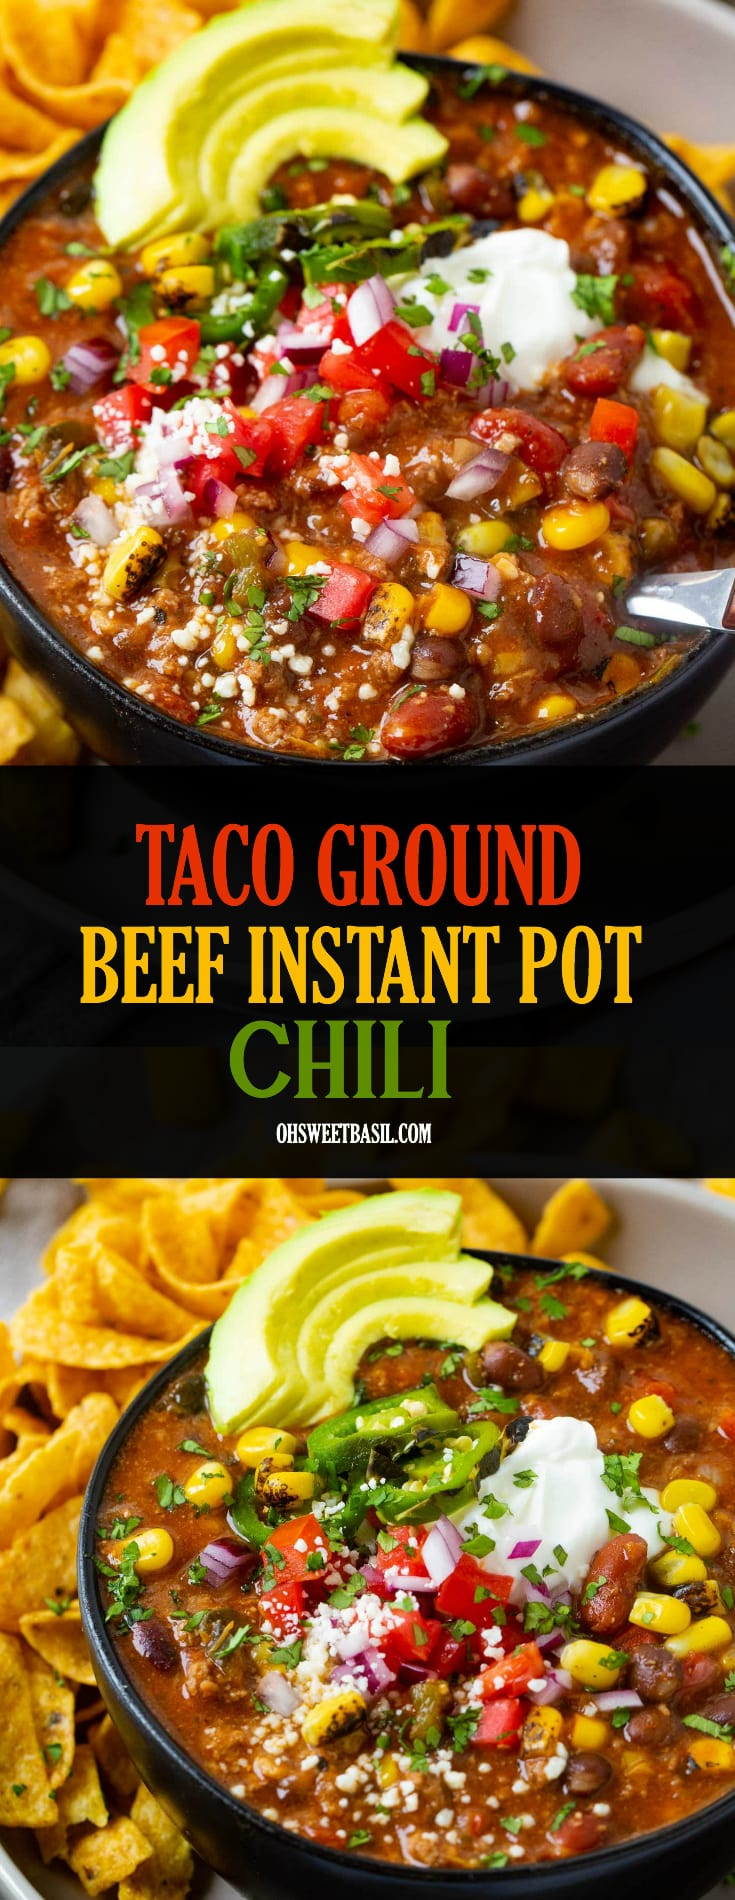 a bowl on a gray plate full of taco ground beef instant pot chili, corn, avocados and fritos chips